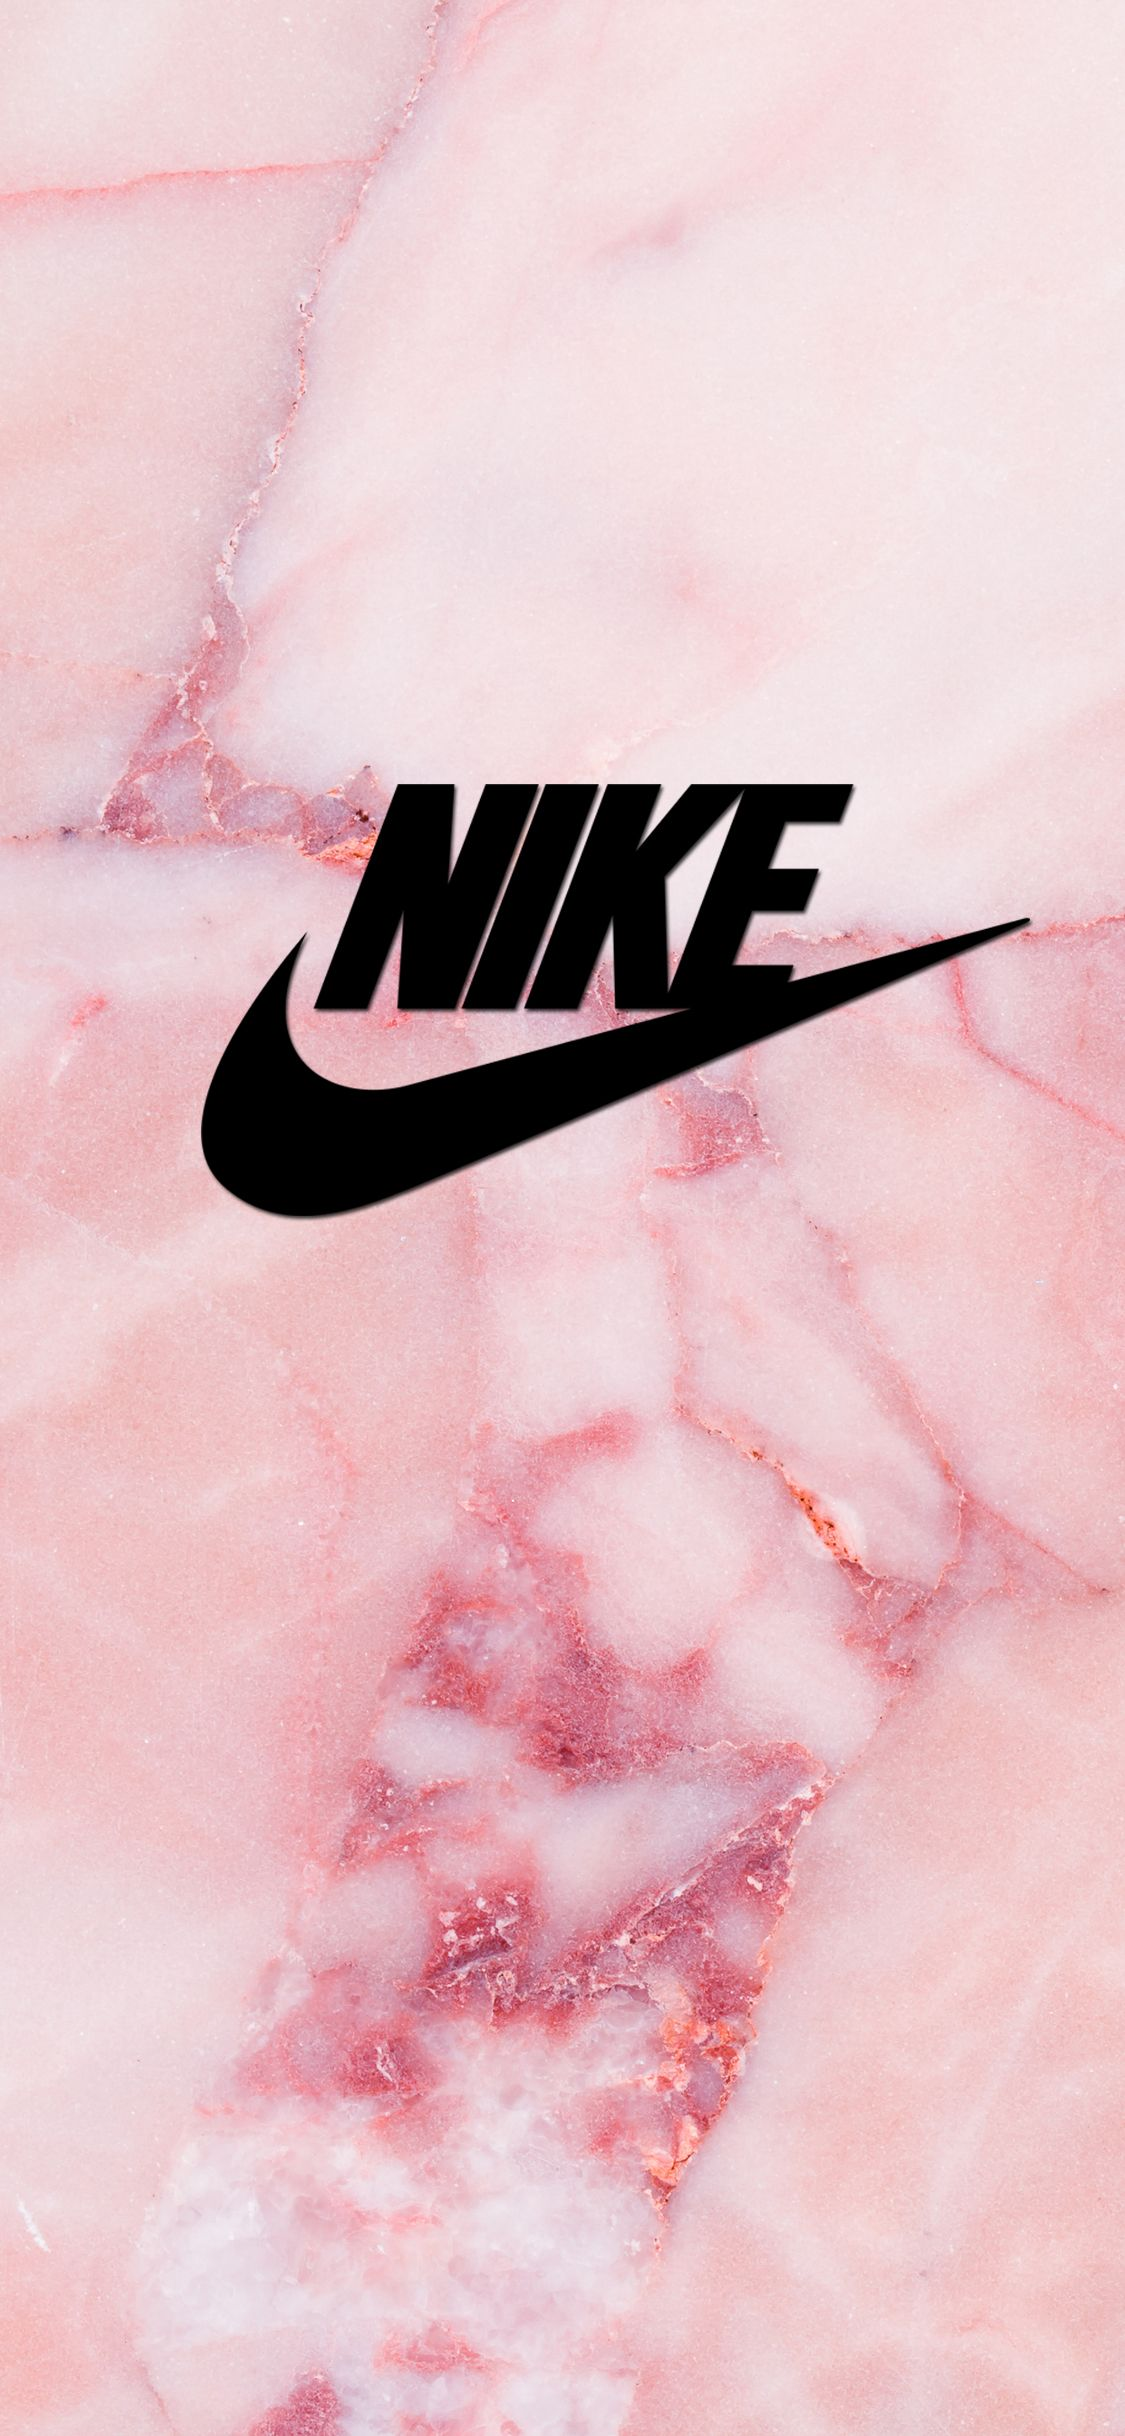 Nike Iphone X Wallpaper You Can Order Iphone Case With This